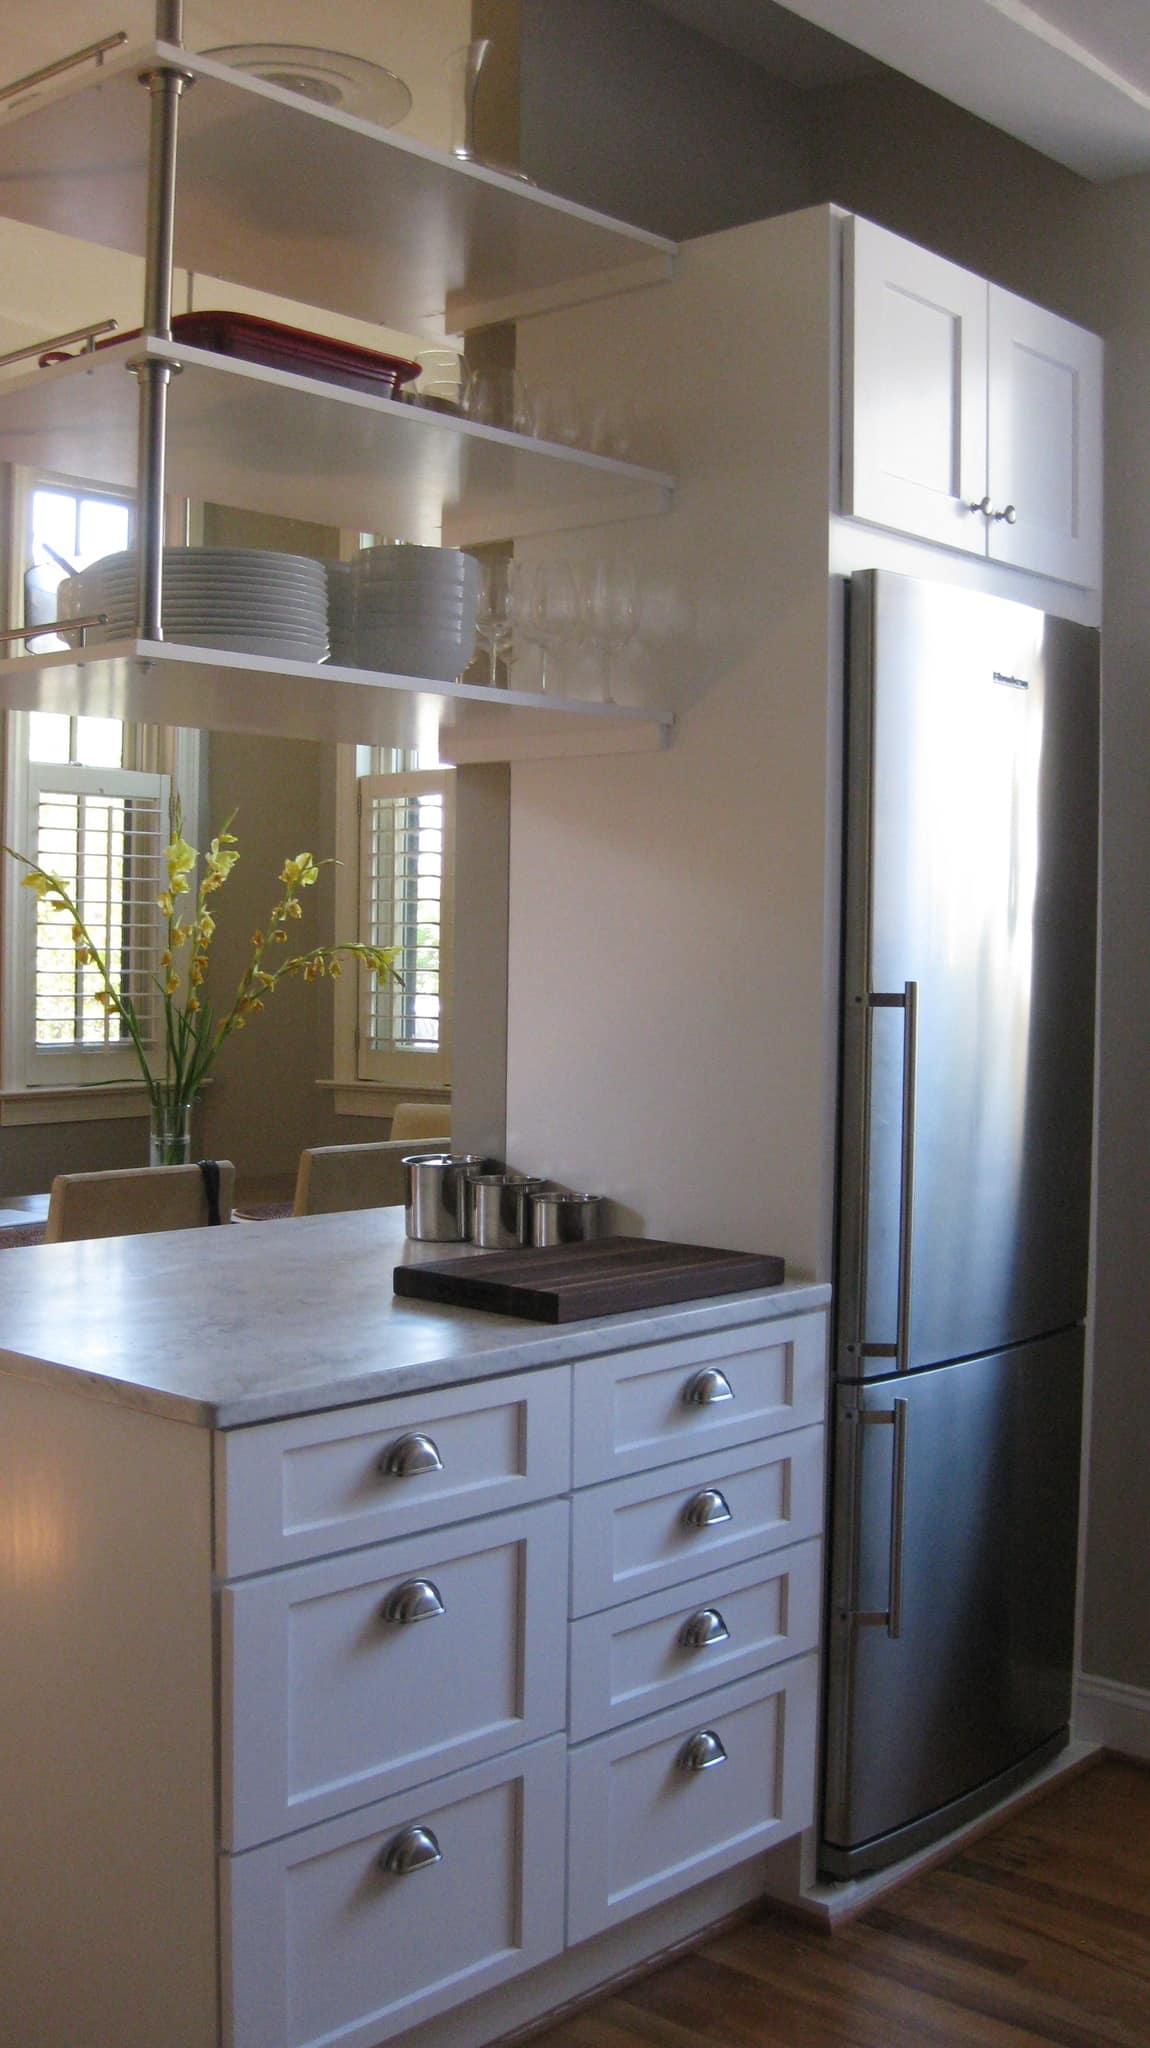 Lucy's Classic Yet Modern Kitchen in Washington D.C.: gallery image 3